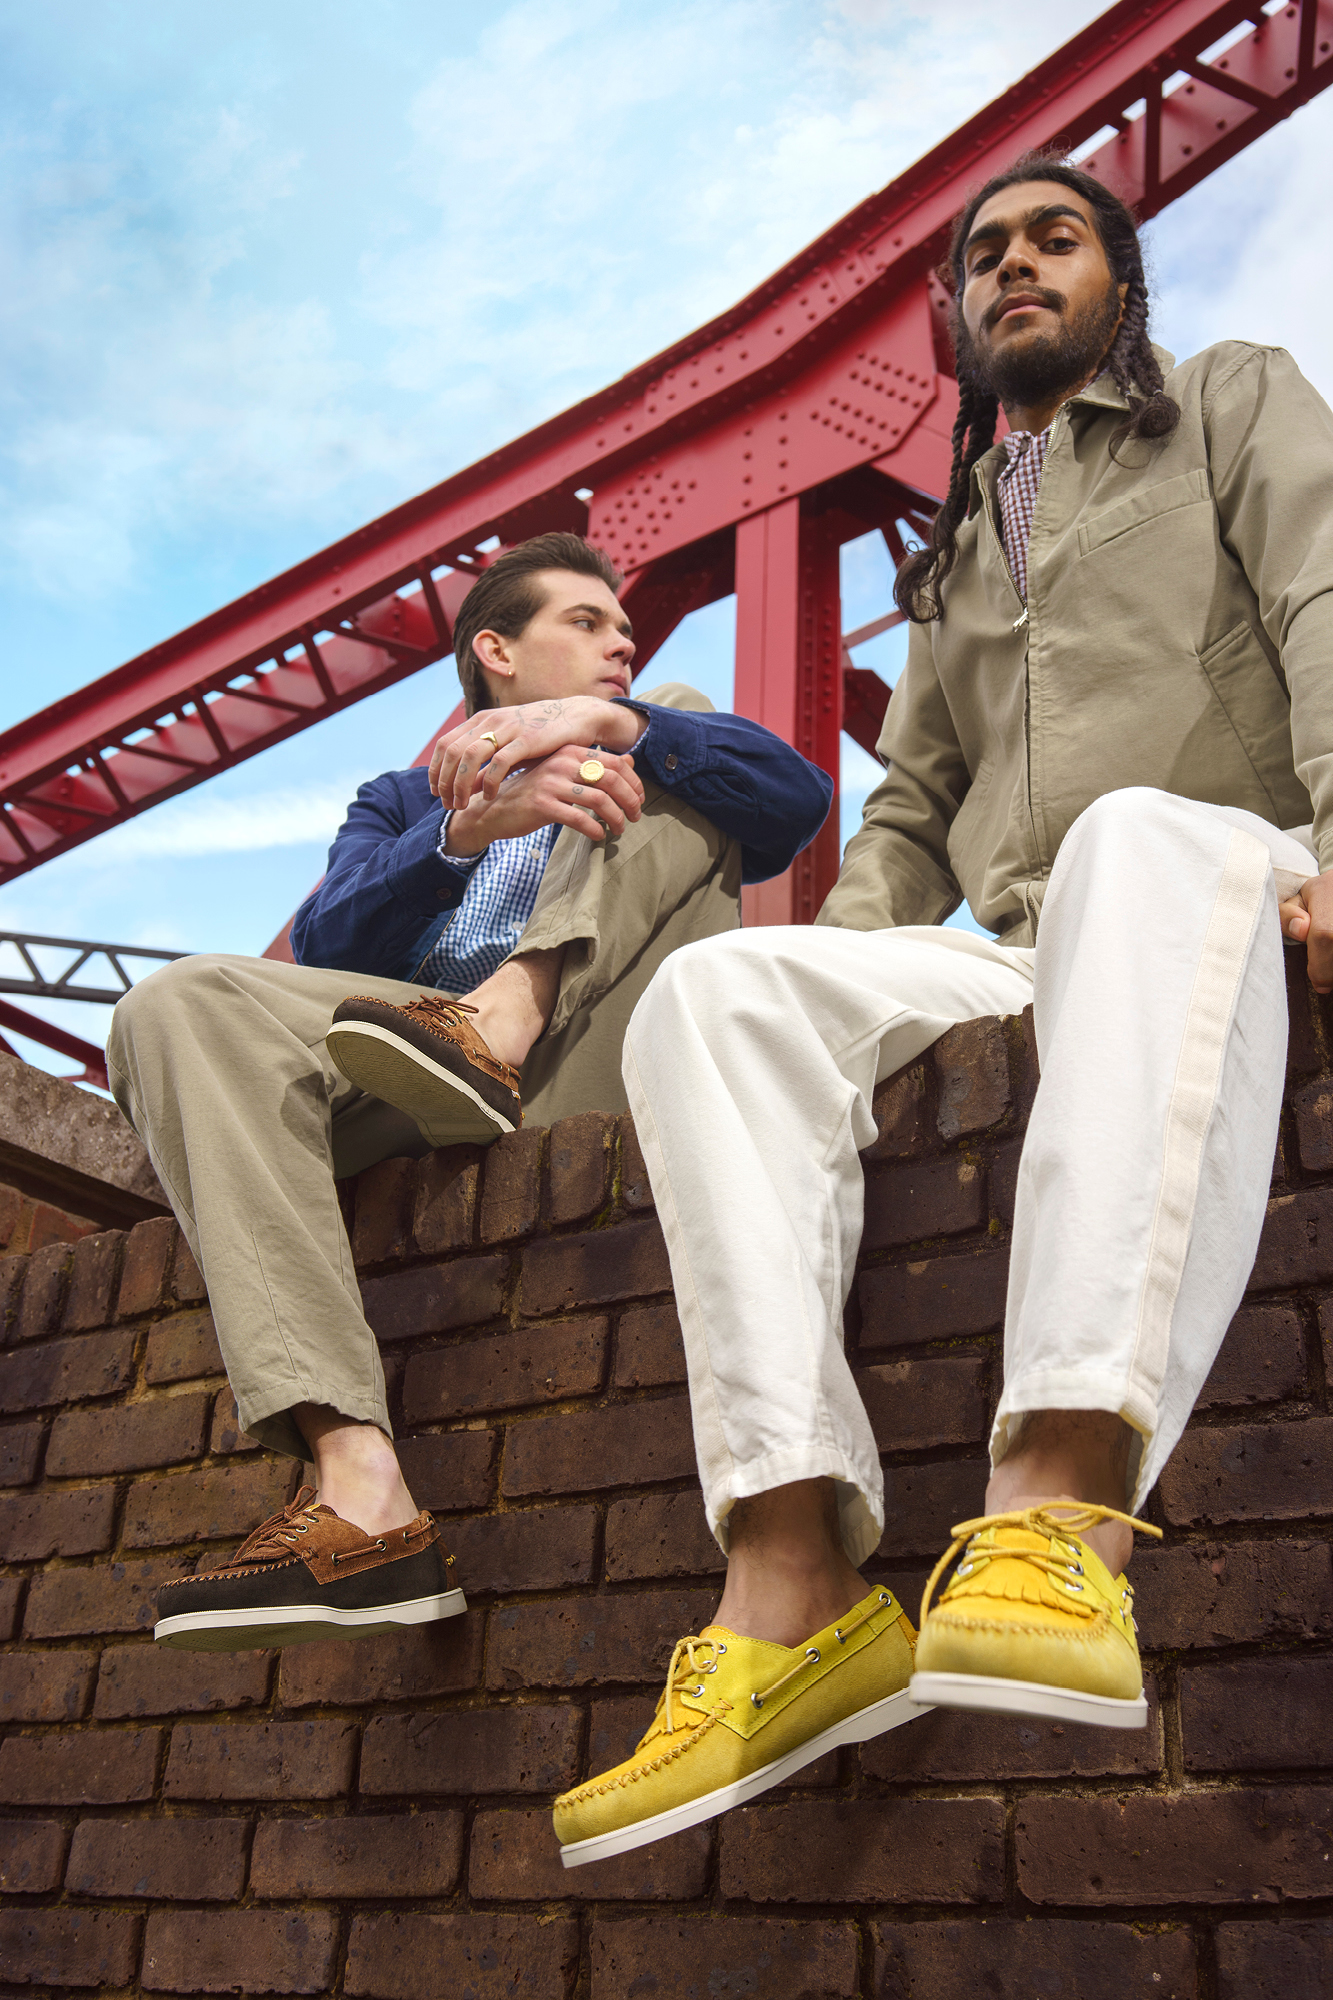 Universal Works collaborated with US shoe brand Sebago on a capsule collection for SS20